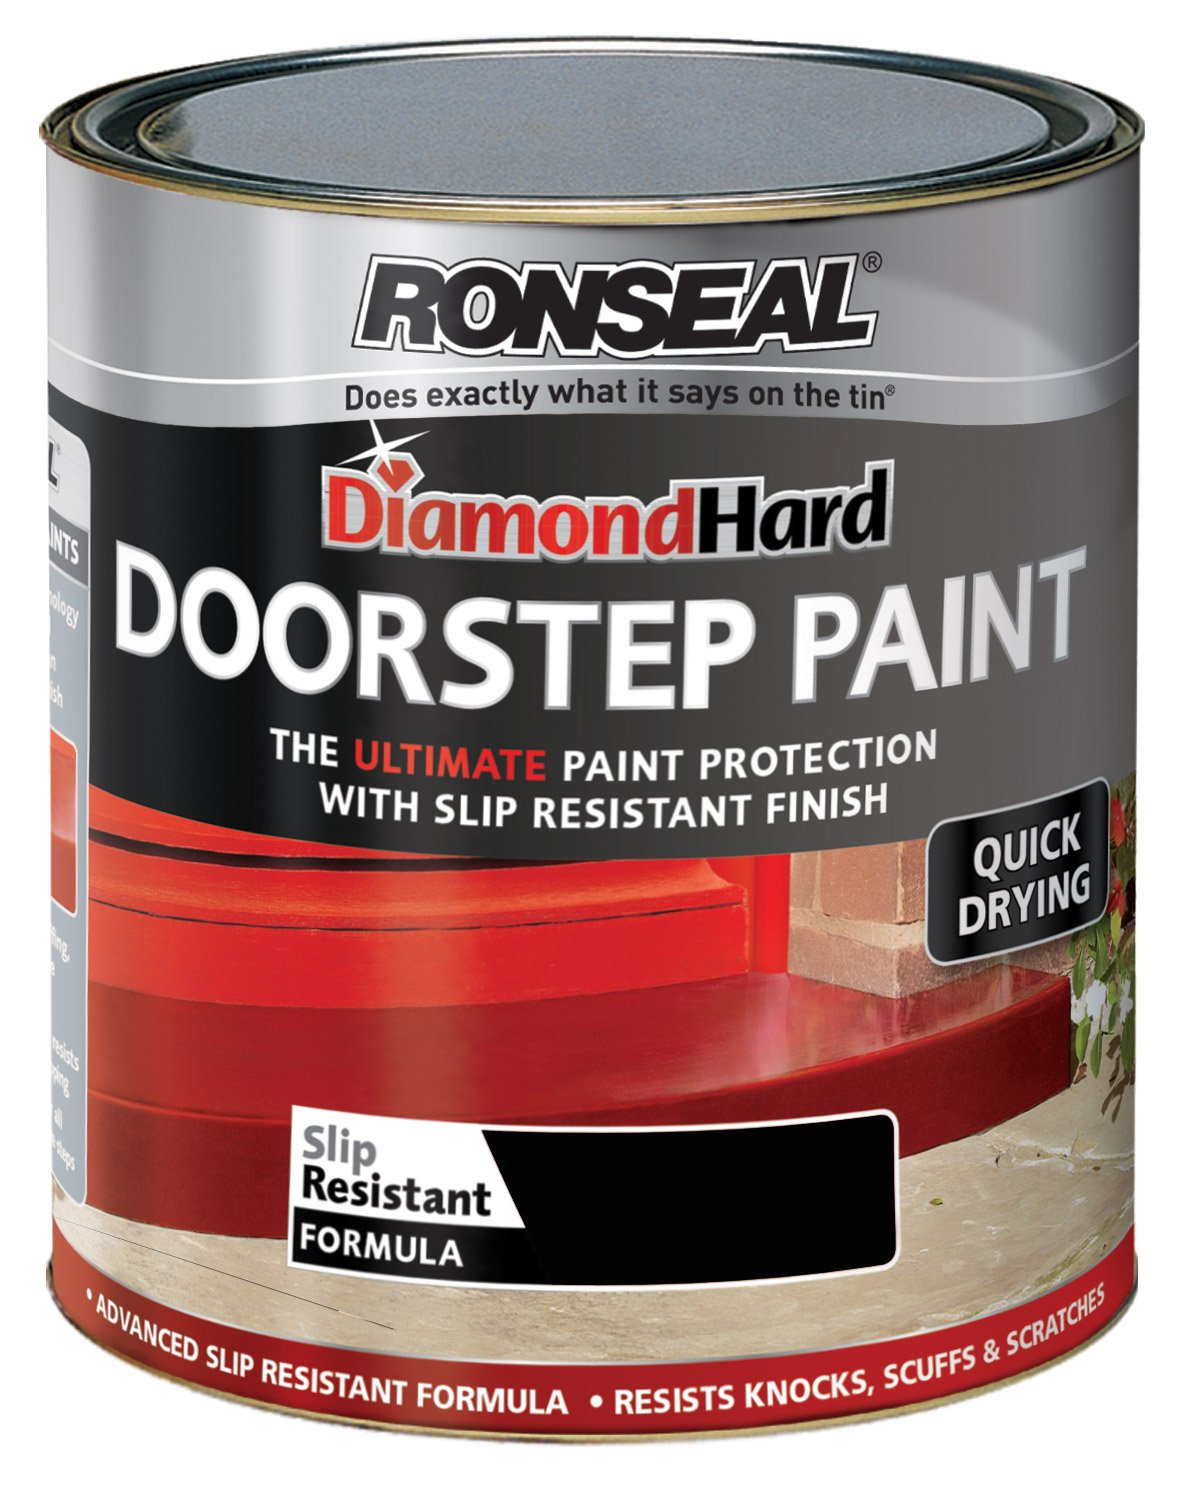 Red Tile Paint For Kitchens Ronseal Dhdspr750 750ml Diamond Hard Doorstep Paint Tile Red